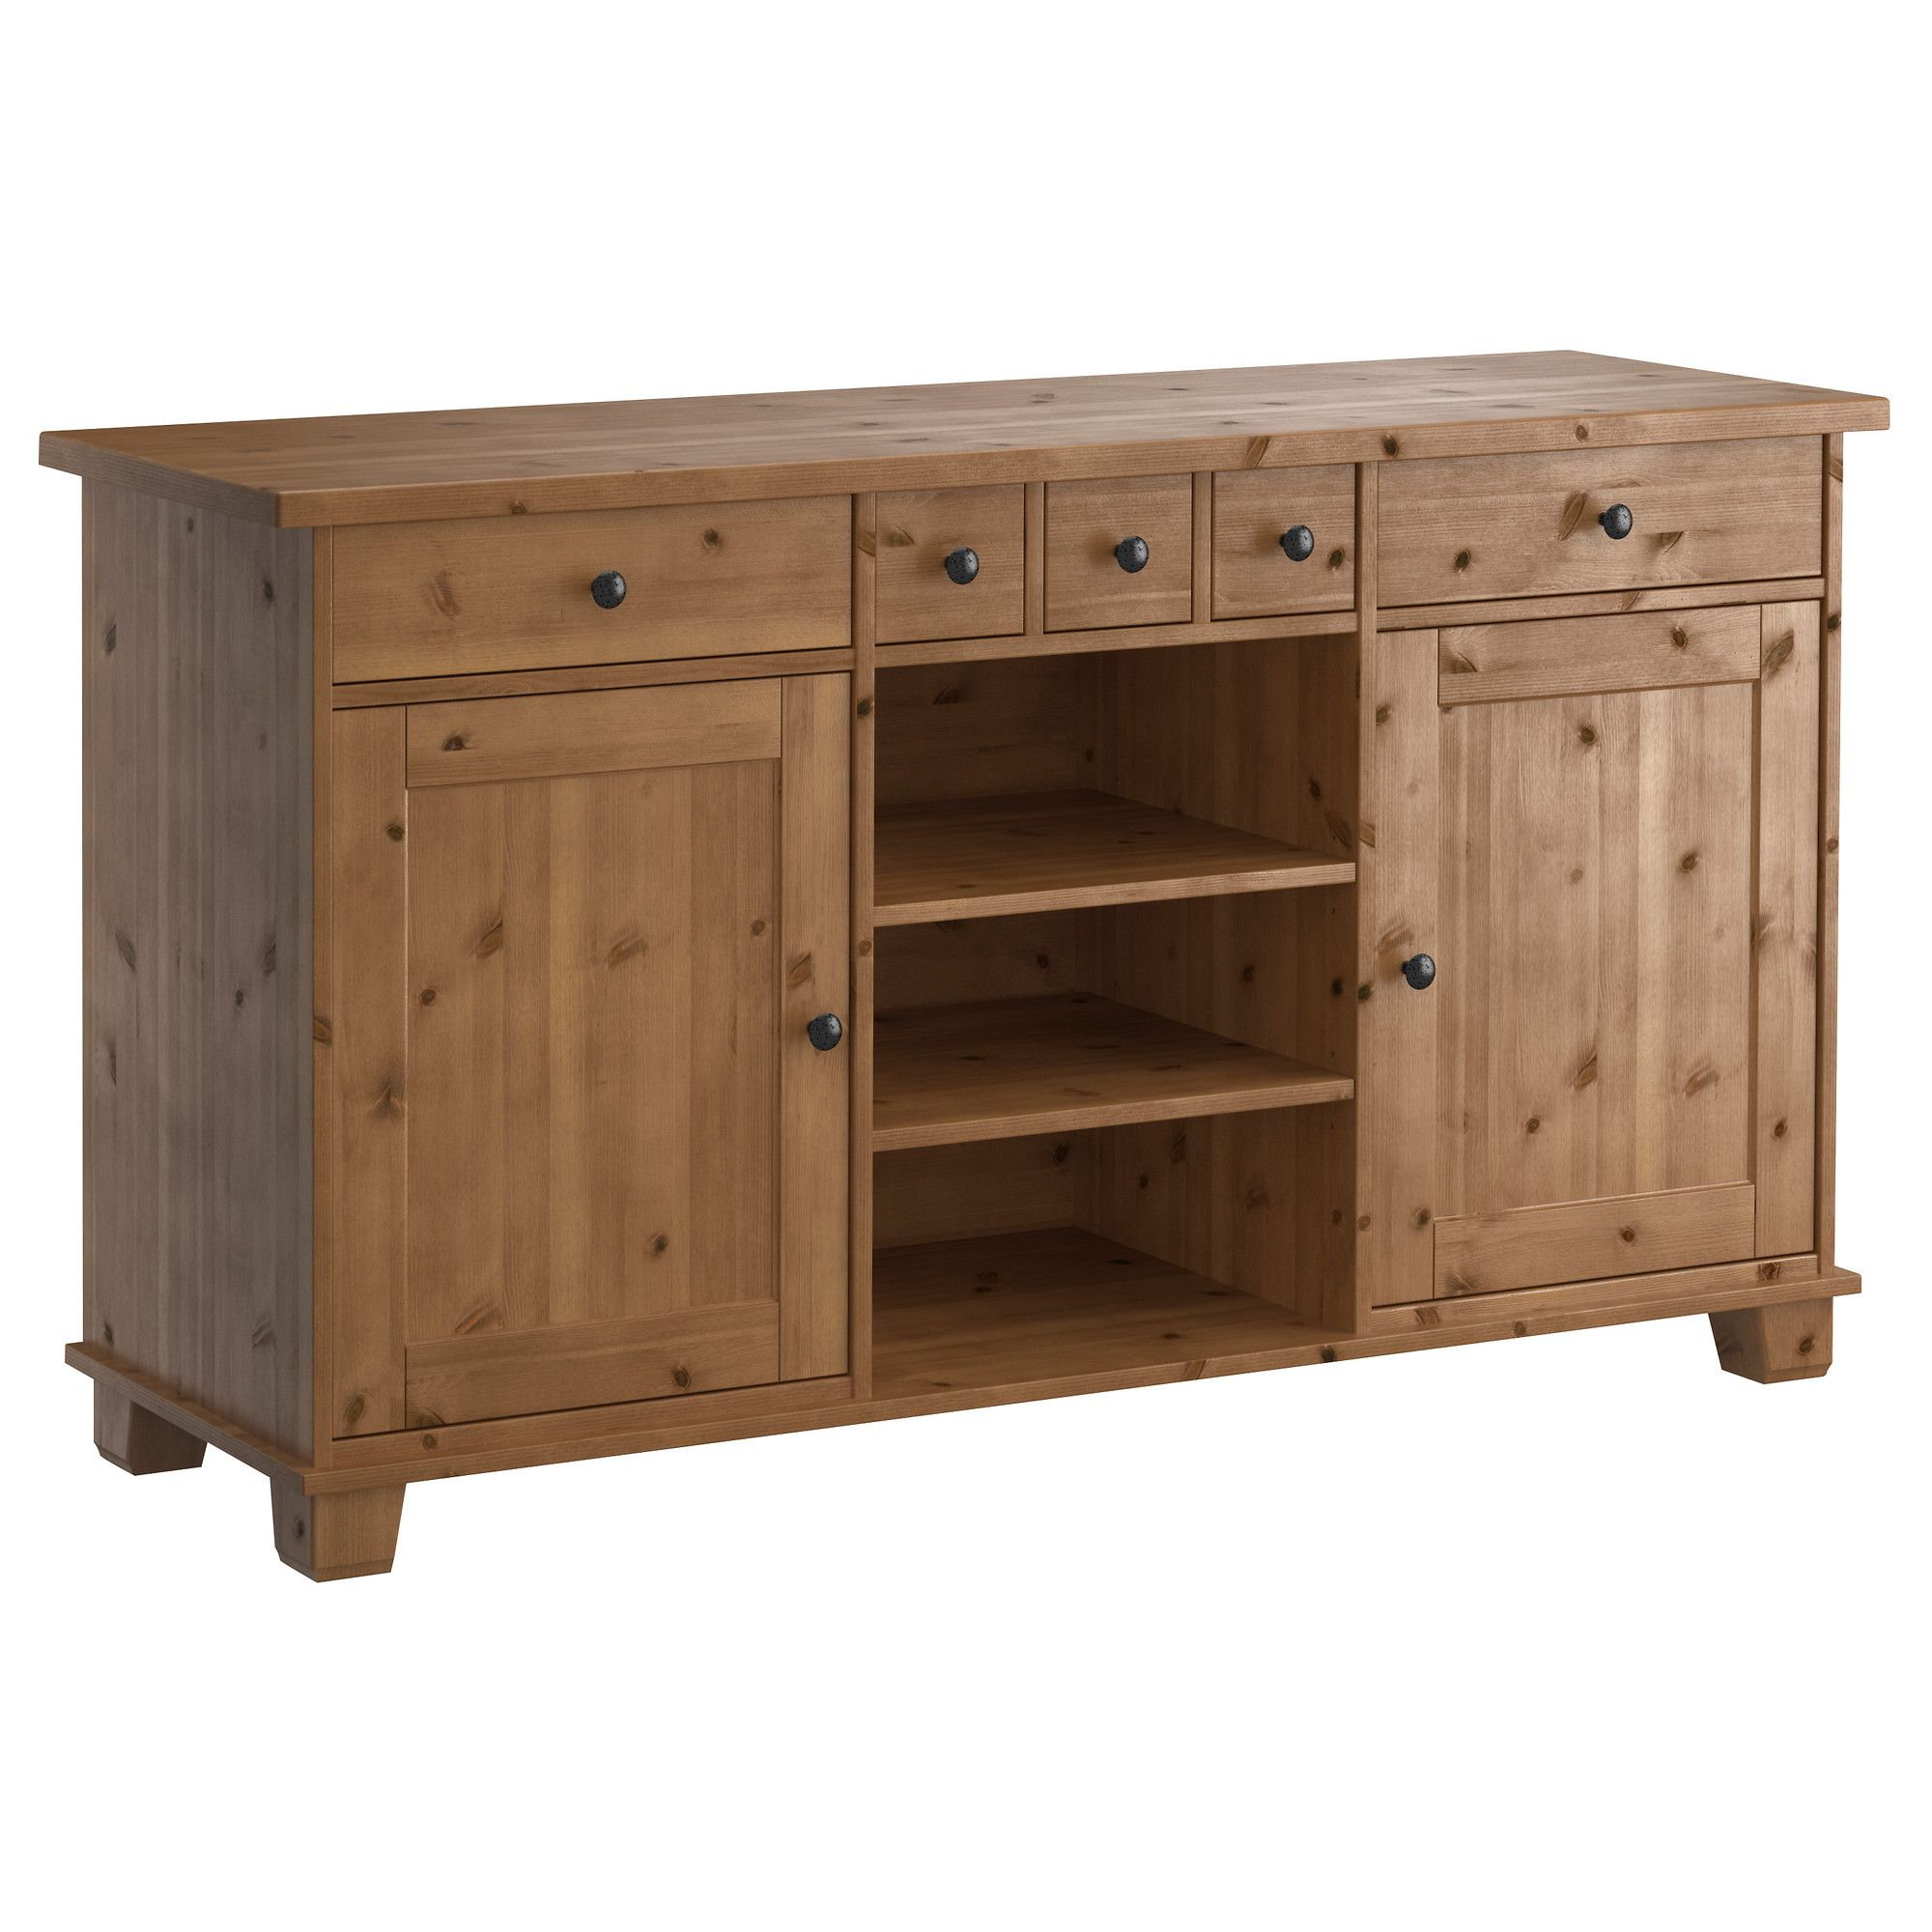 Shop For Furniture, Lighting, Home Accessories & More | Home In Light White Oak Two Tone Modern Buffets (View 9 of 20)